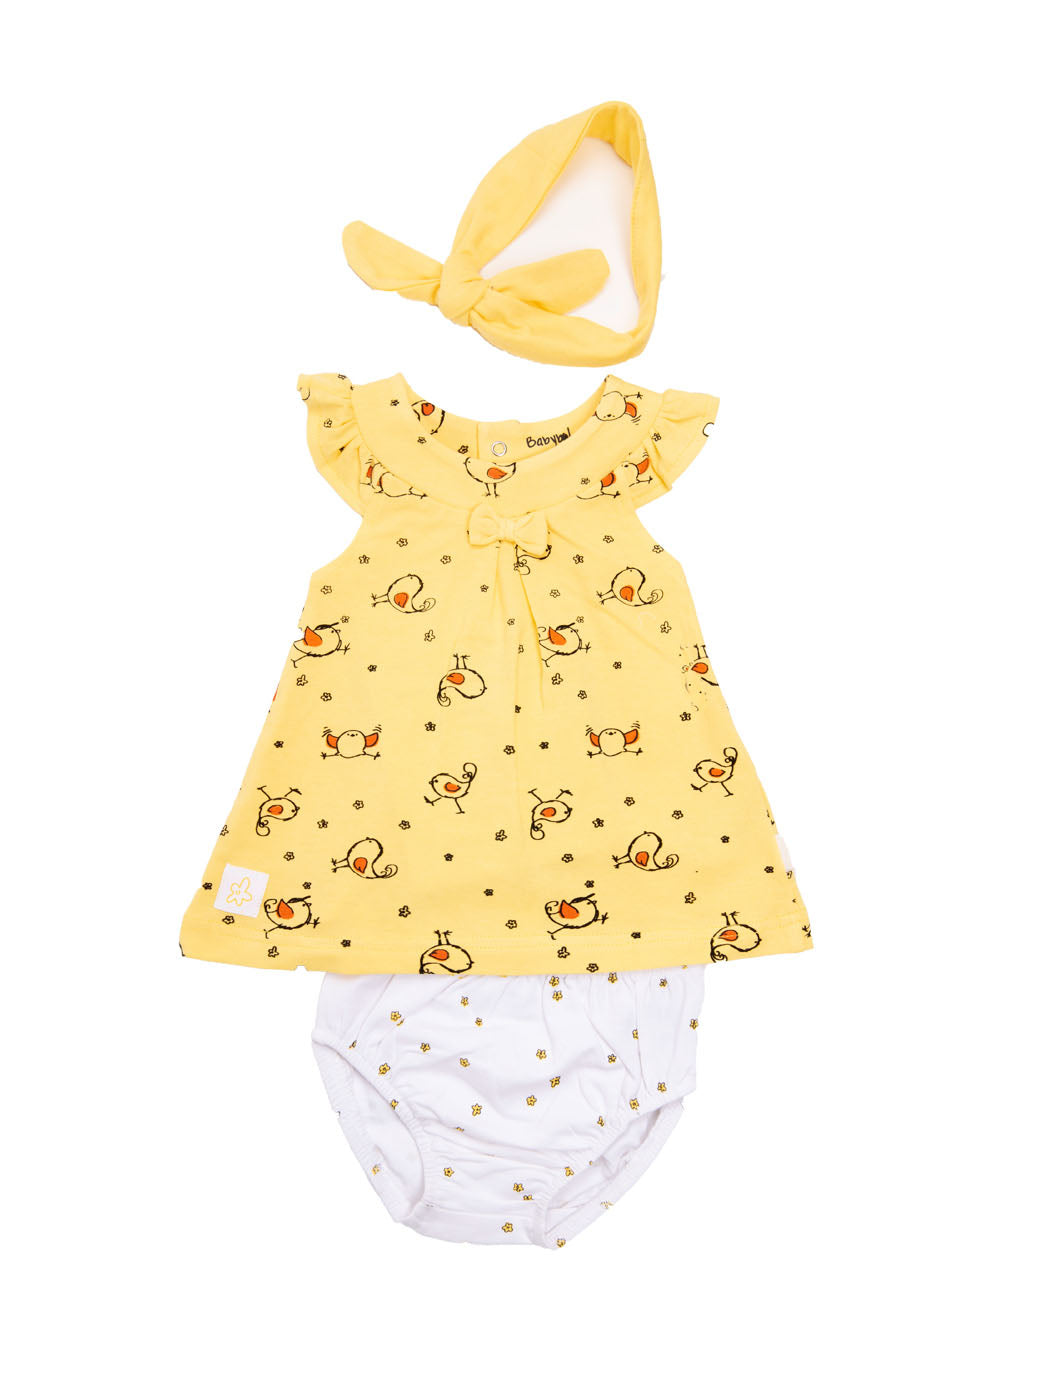 Baby Outfit 3pcs Art.11080